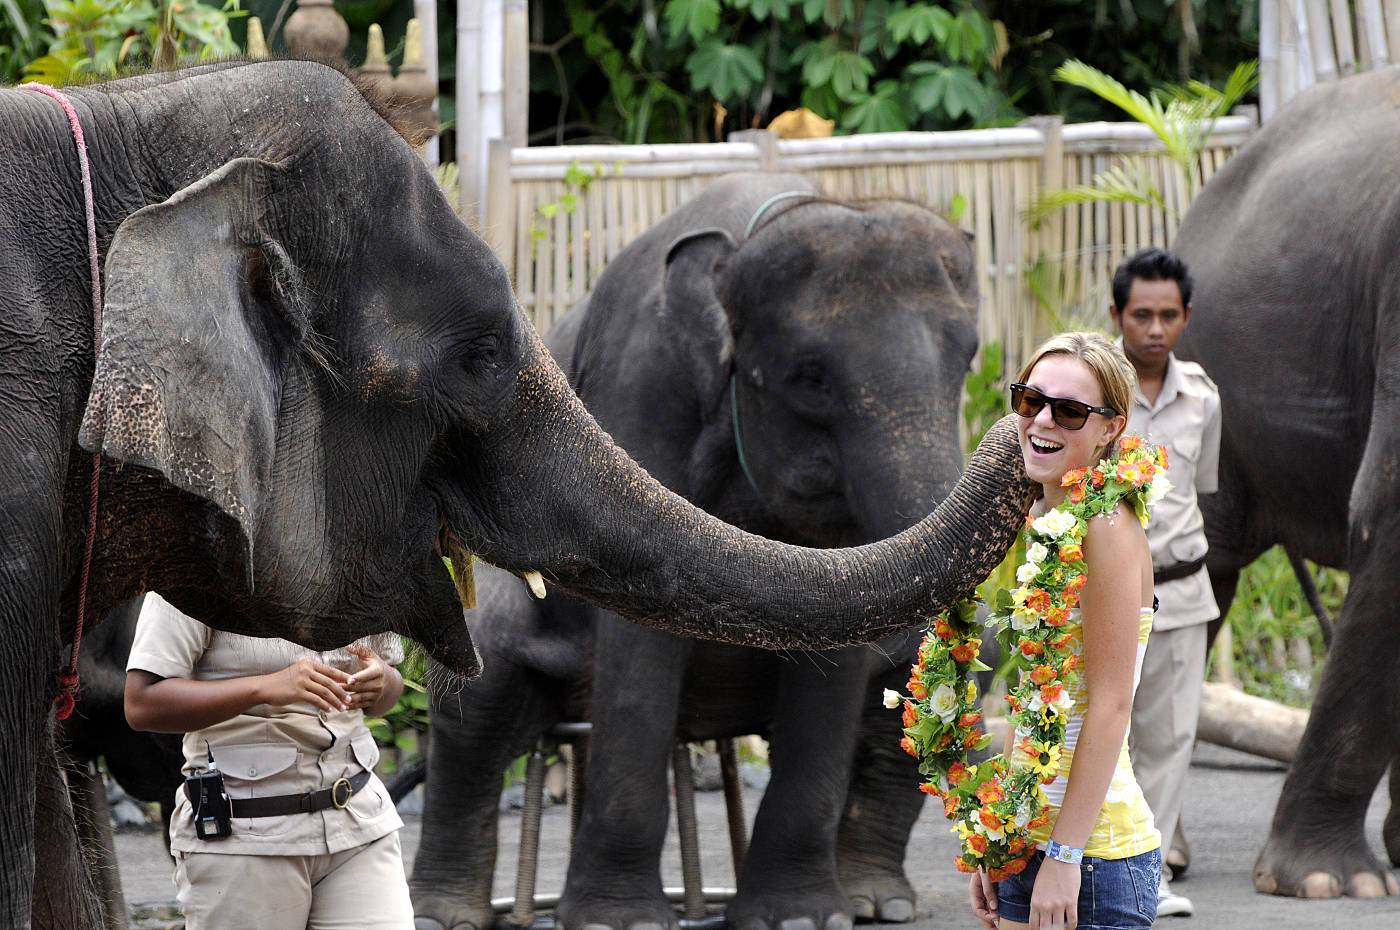 Mara River Safari Lodge Elephant Show at Bali Safari